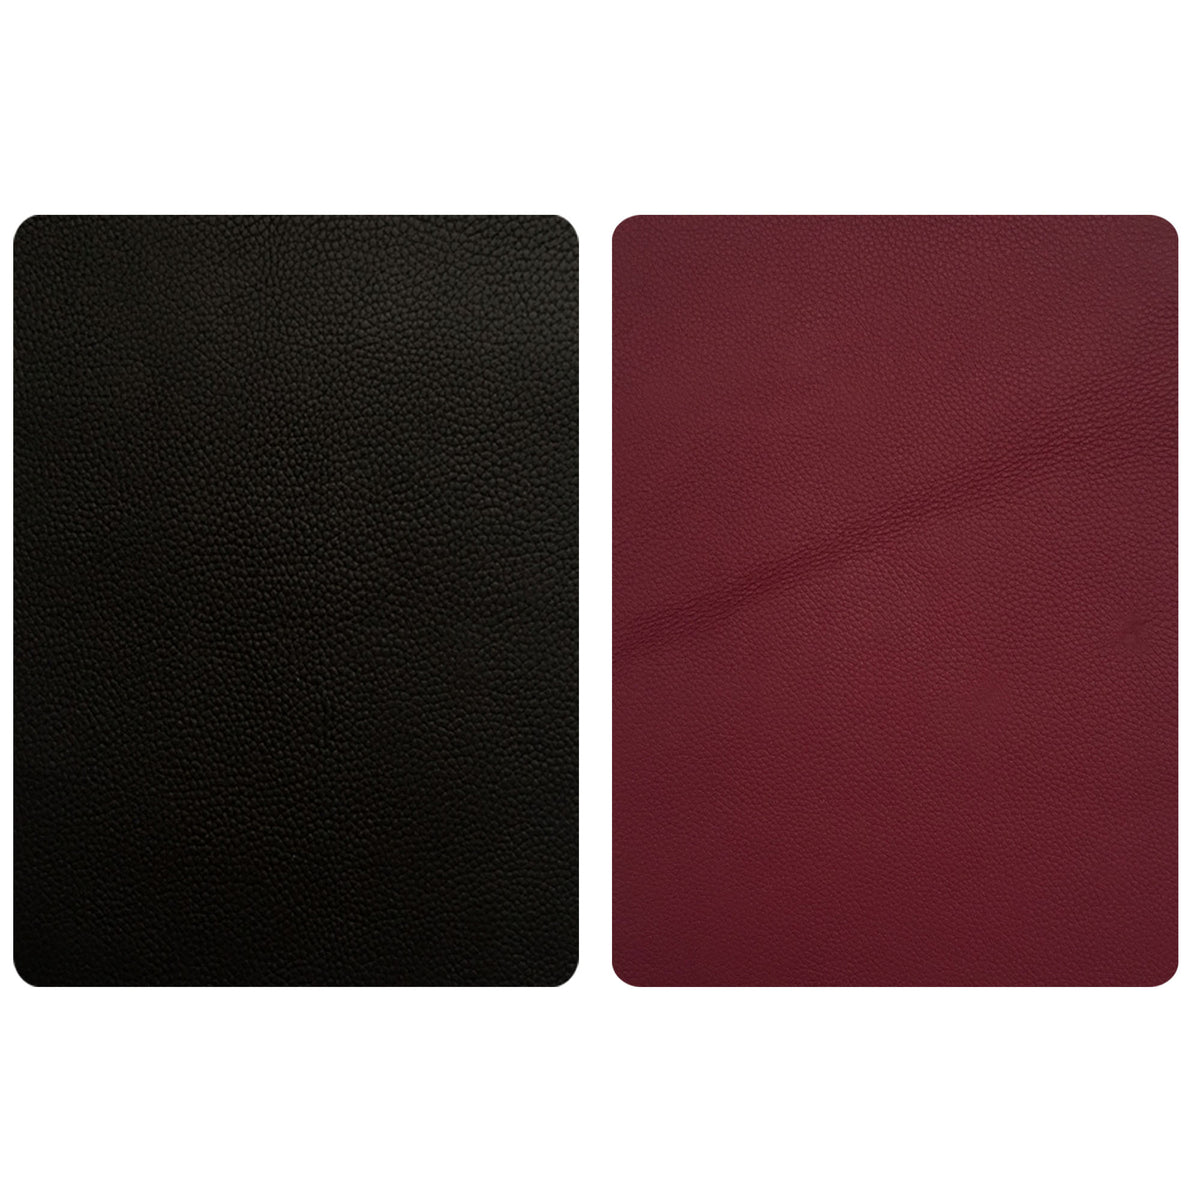 Black Leather Repair Patch Kit | Free KN95 Face Masks - TM Leather